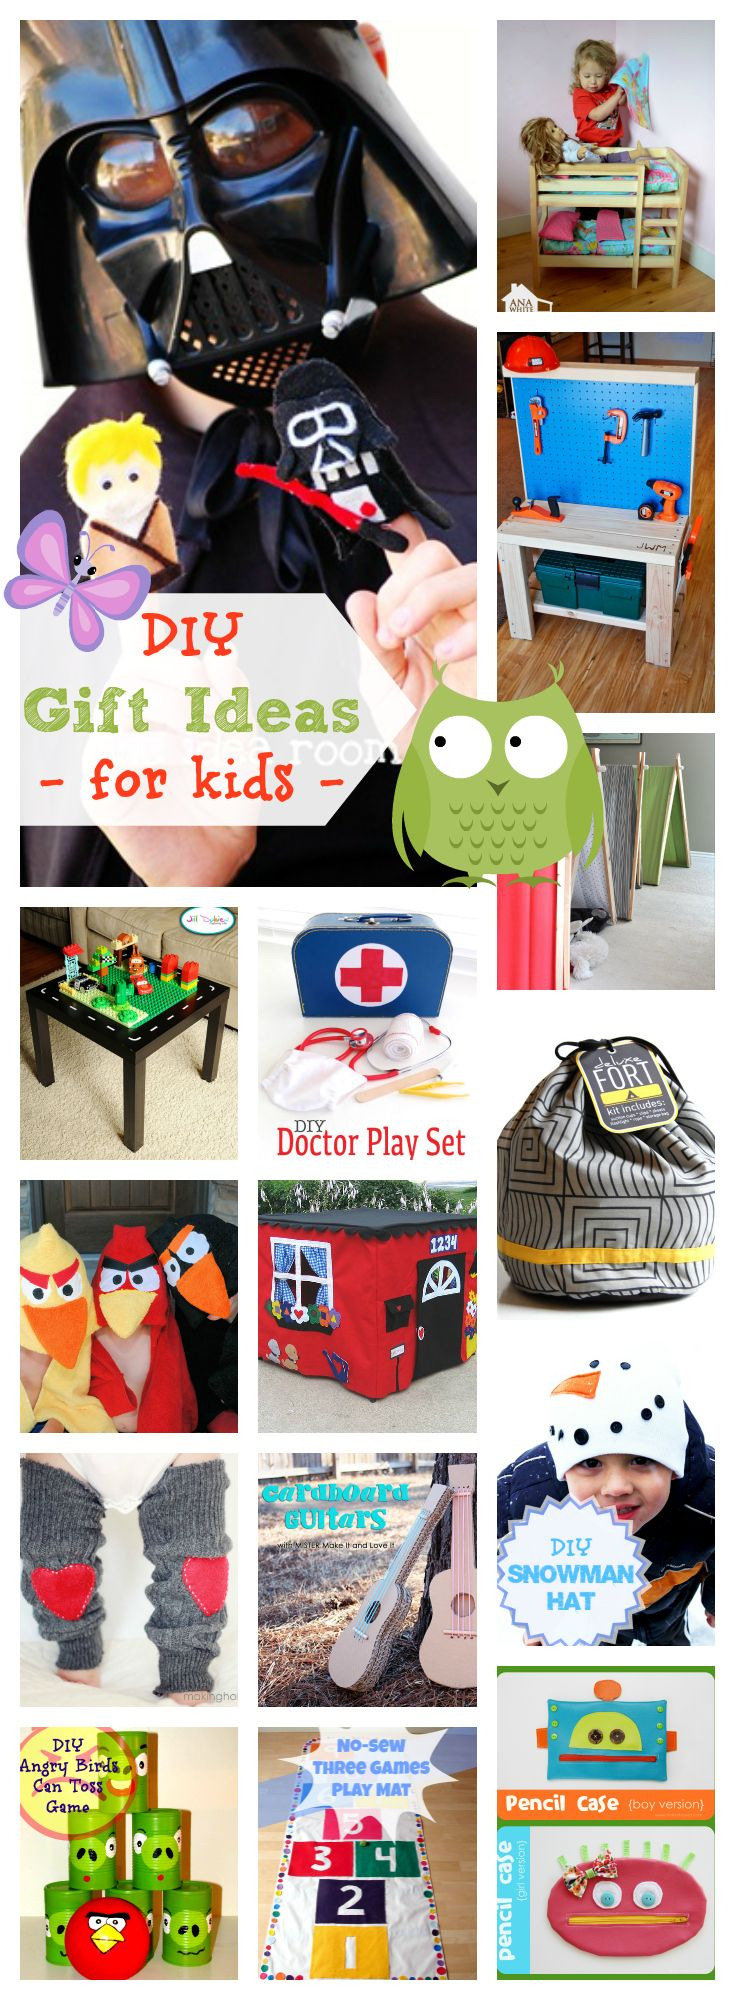 75 awesome diy gifts for kids handpicked by a 10 year old 75 awesome diy gifts for kids handpicked by a 10 year old solutioingenieria Gallery